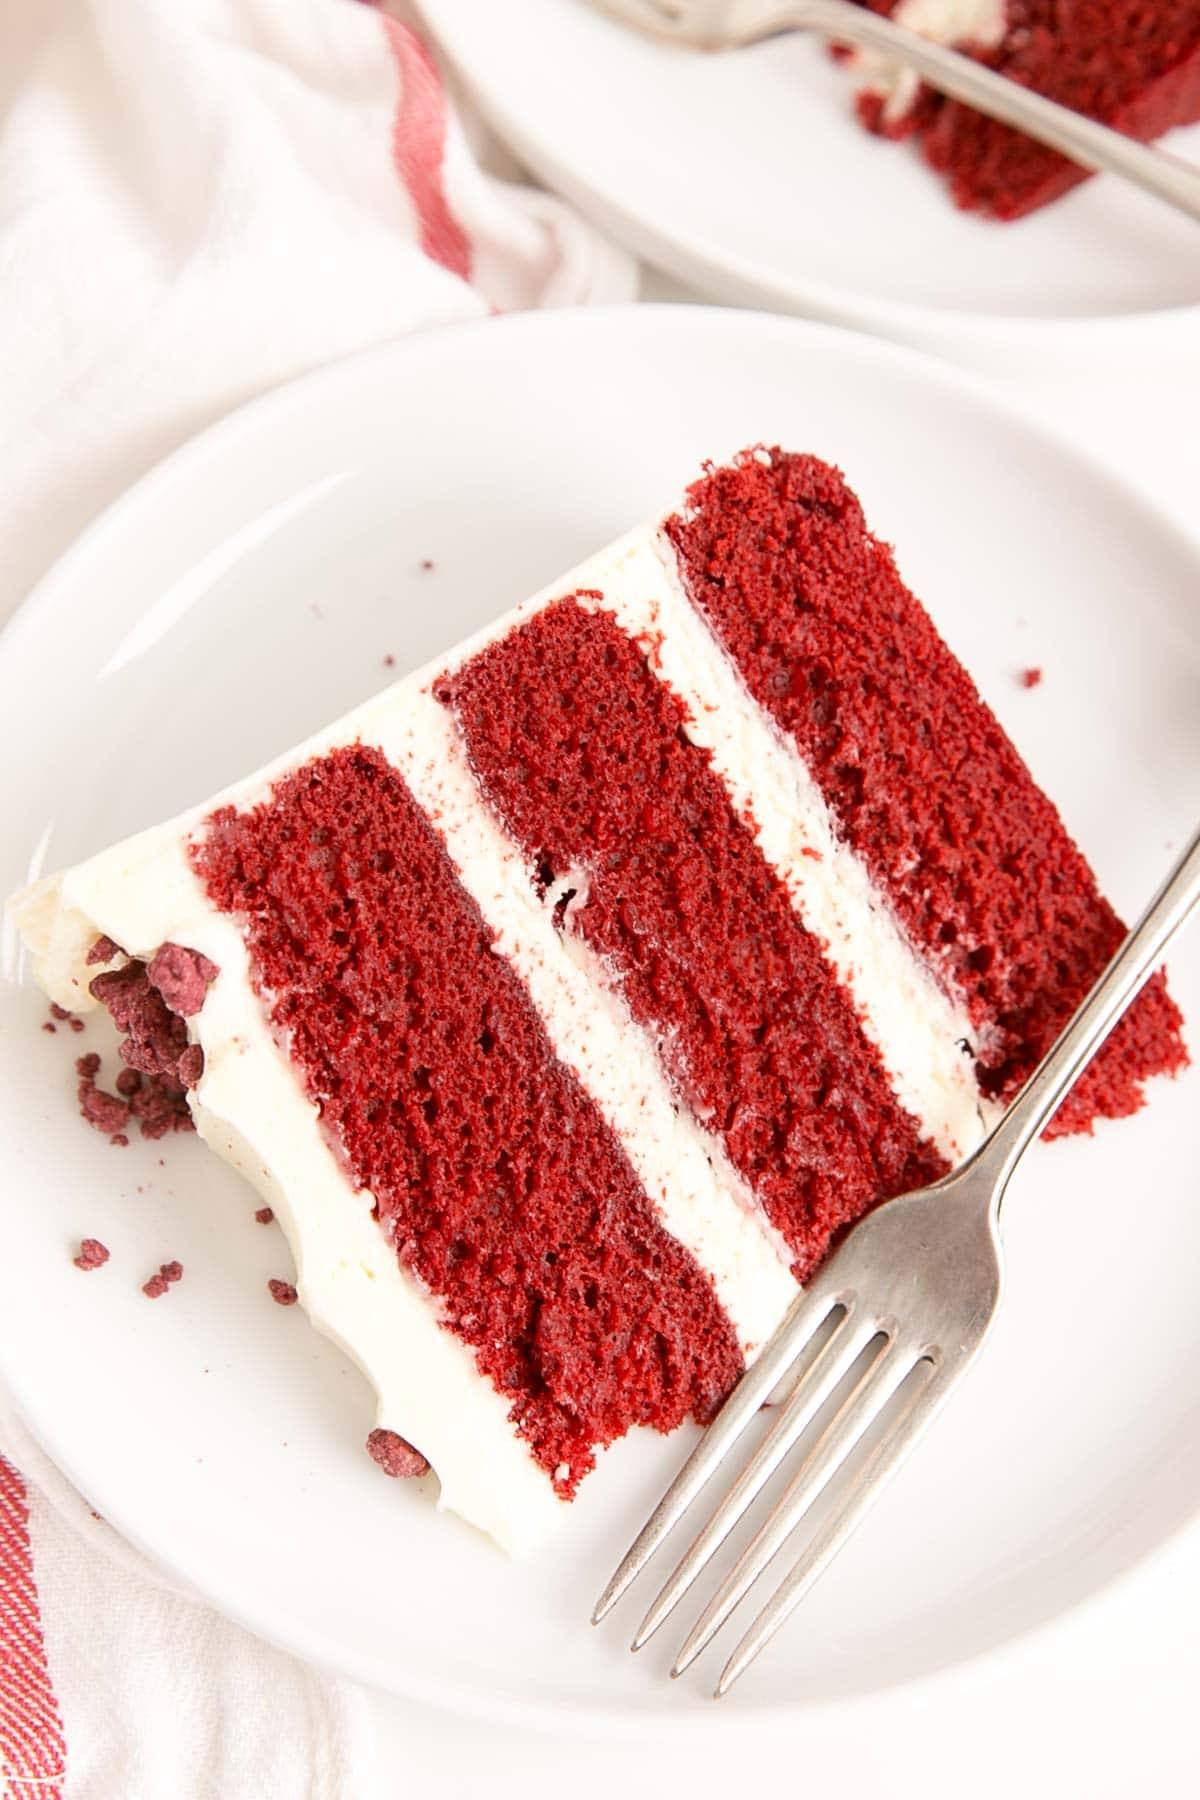 Slice of classic red velvet cake on a plate.